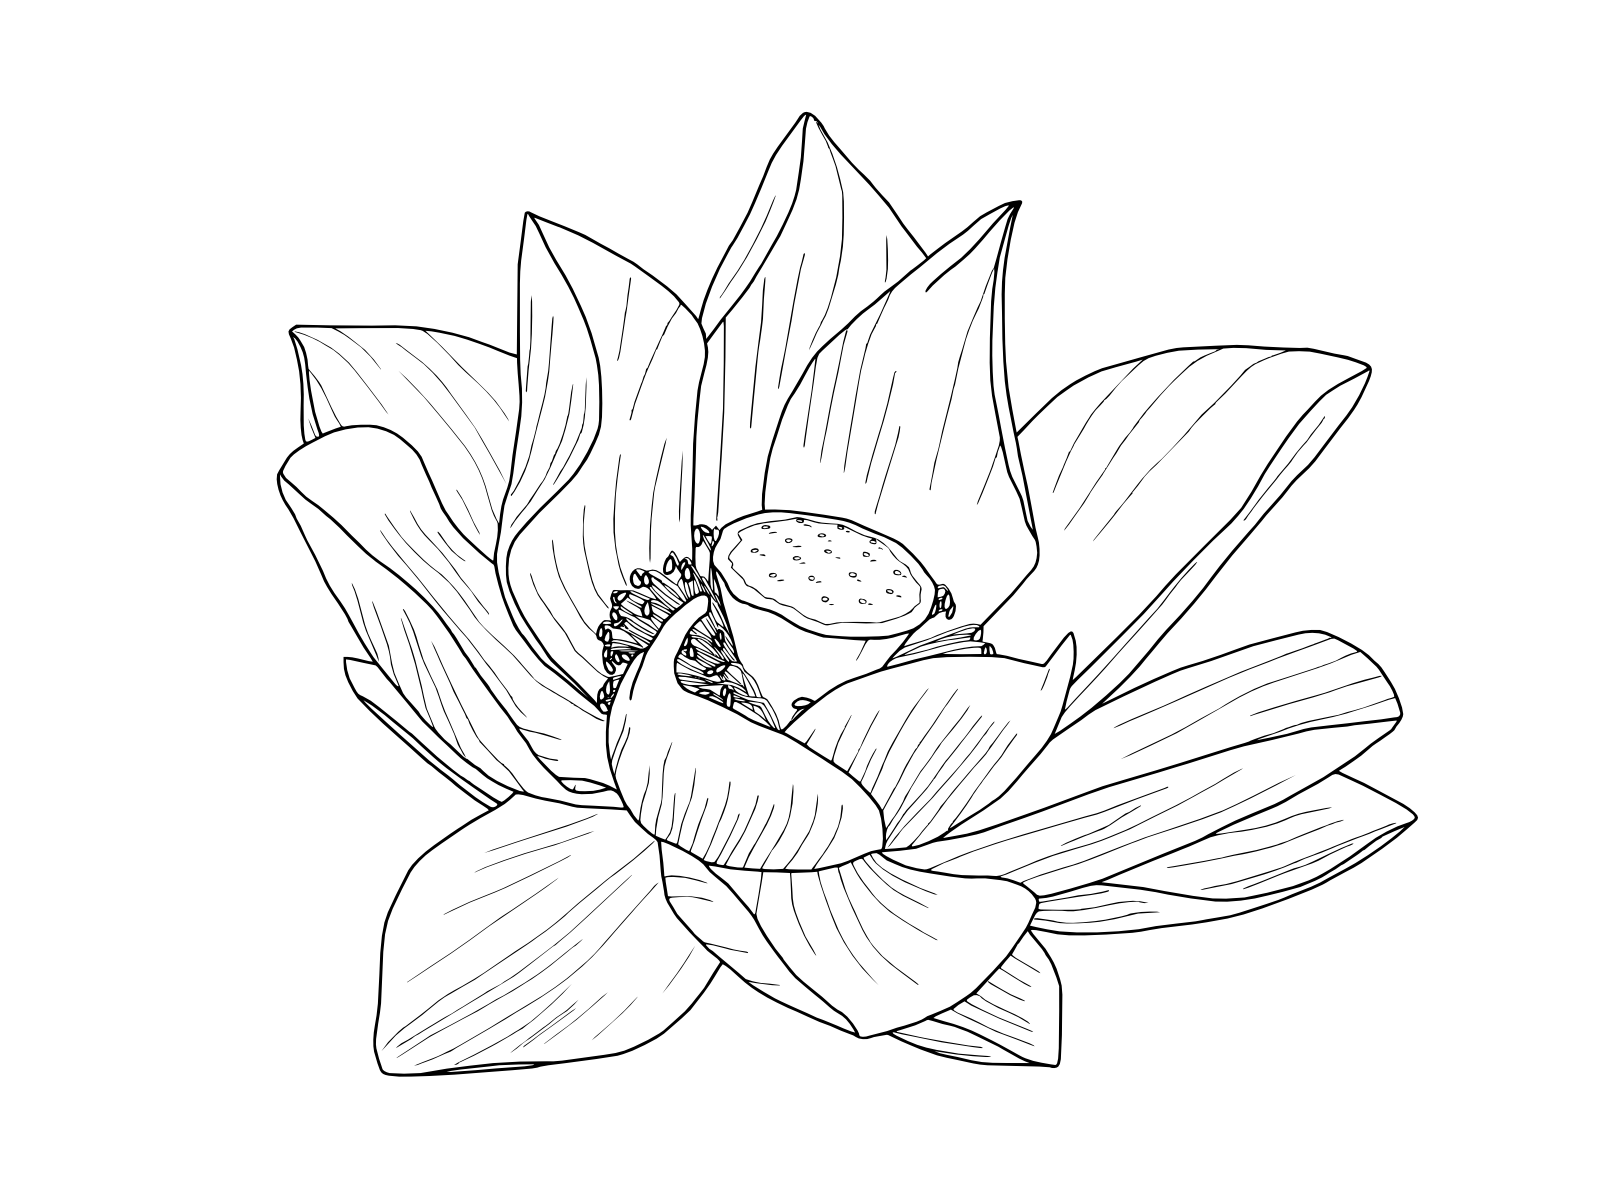 1600x1200 Lotus Flower Outline Lotus Flower Outline, Lotus